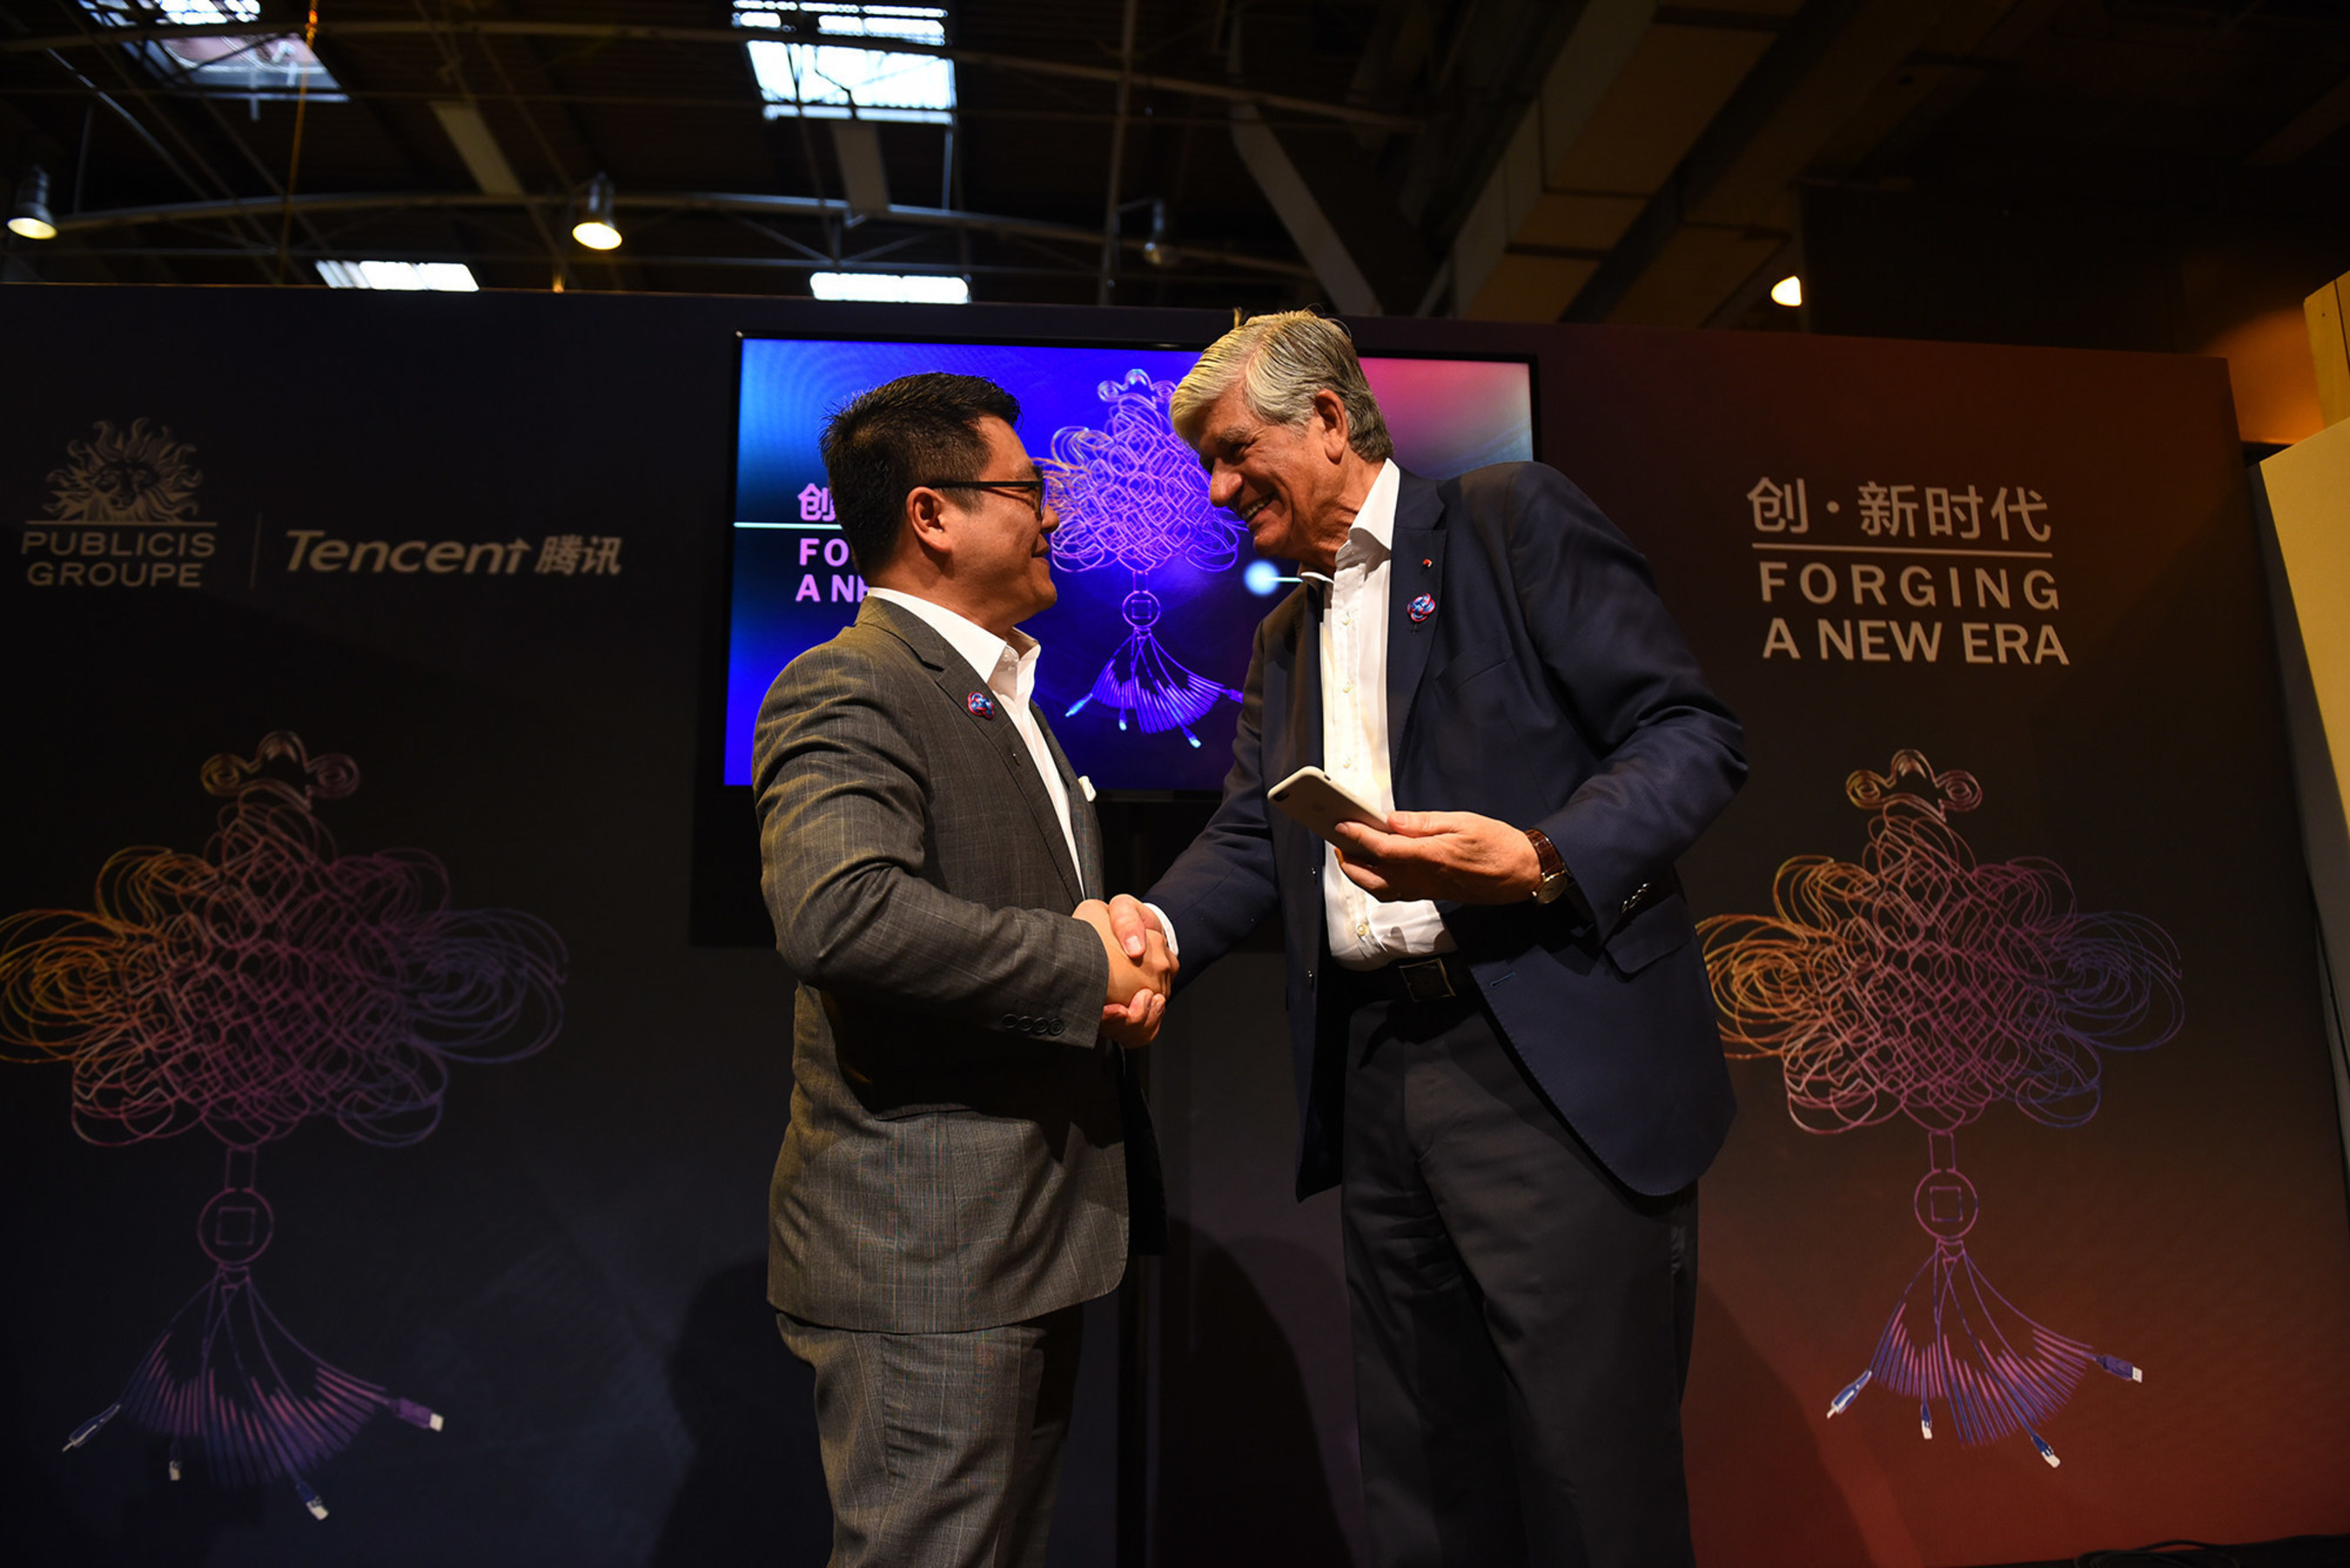 Publicis Groupe and Tencent Sign Historic Global Partnership